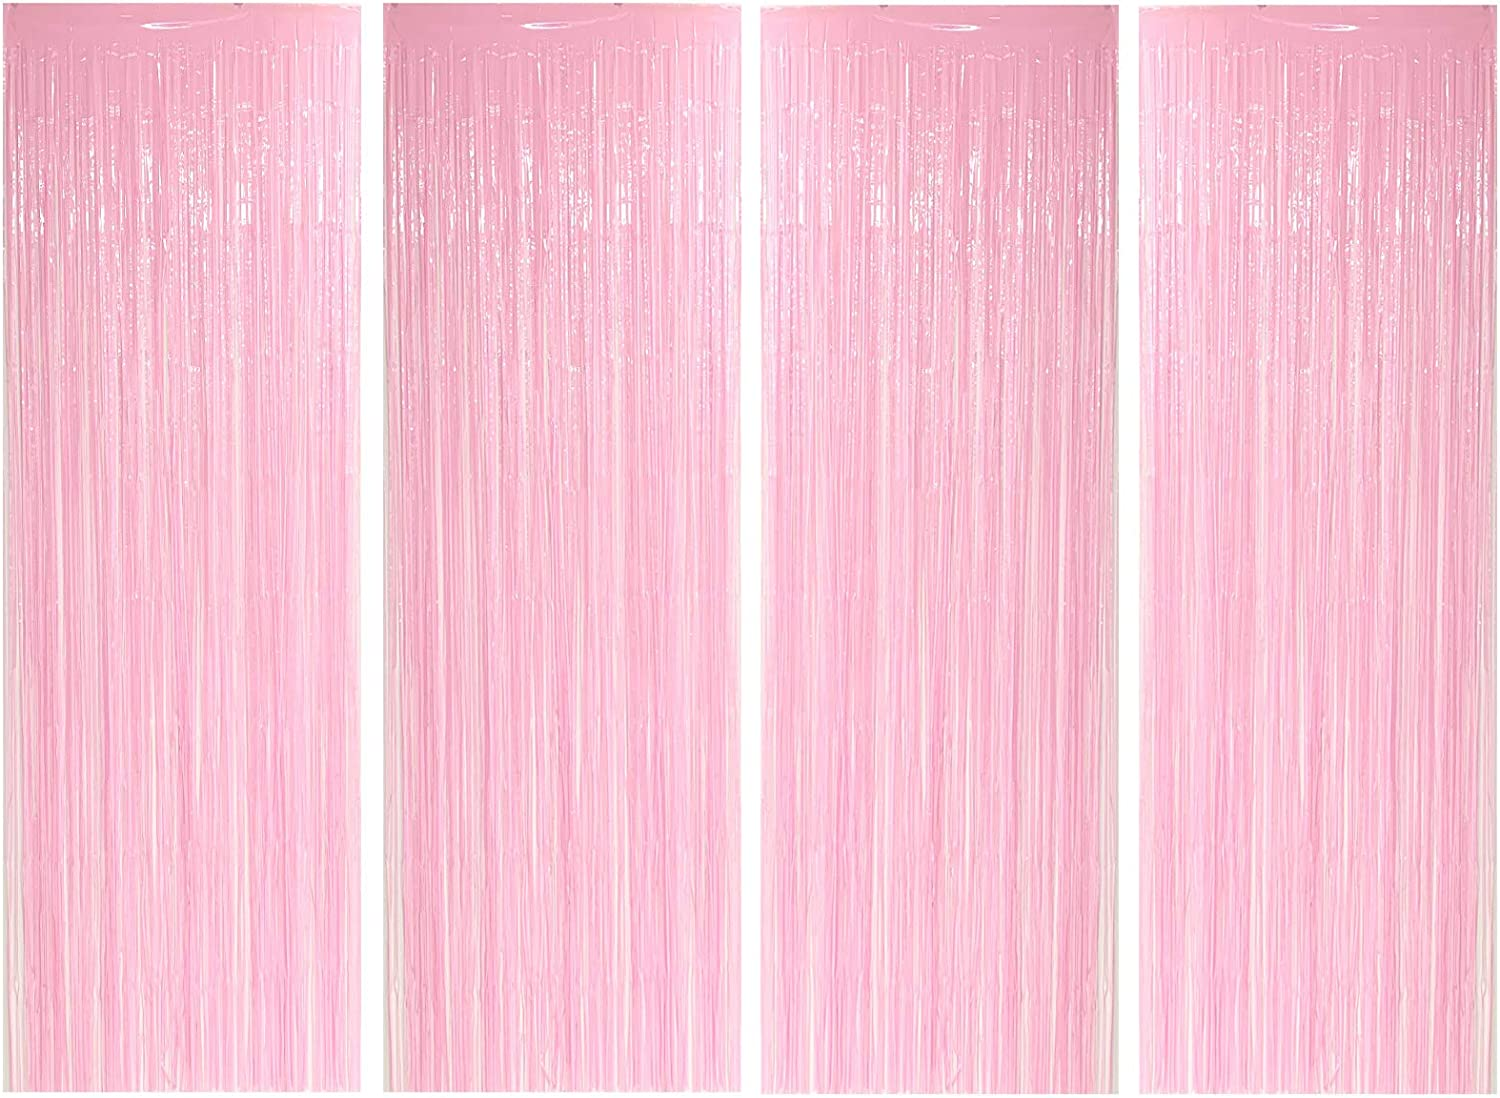 Allgala 4PK 3.3 x 9.8 FT (1x3M) Metalic Tinsel Party Photo Backdrop Curtains Door Fringe Décor-Macaron Pink-BD52659